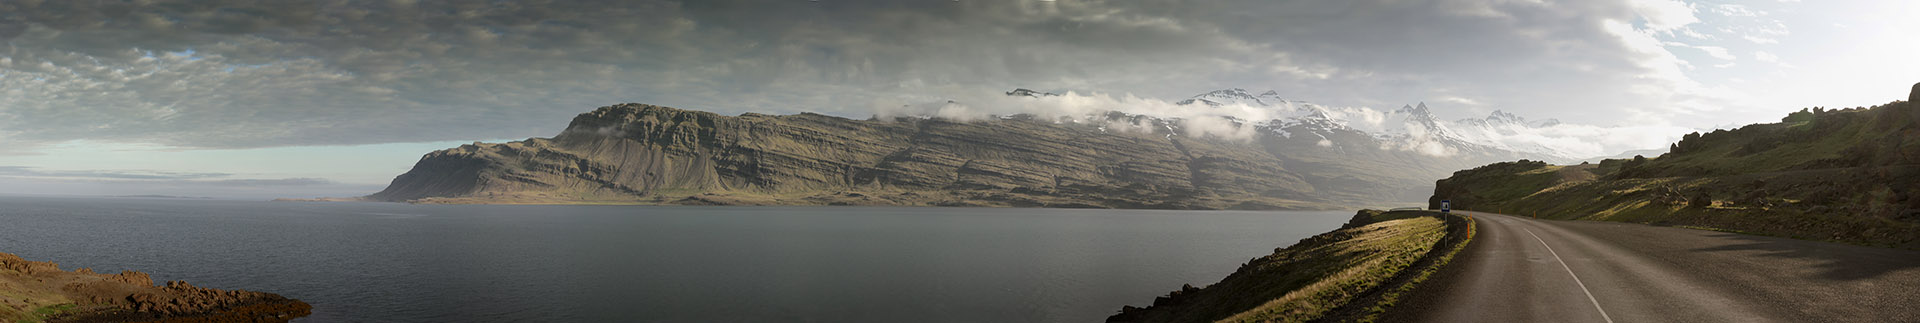 Eastfjords Panorama by xoio